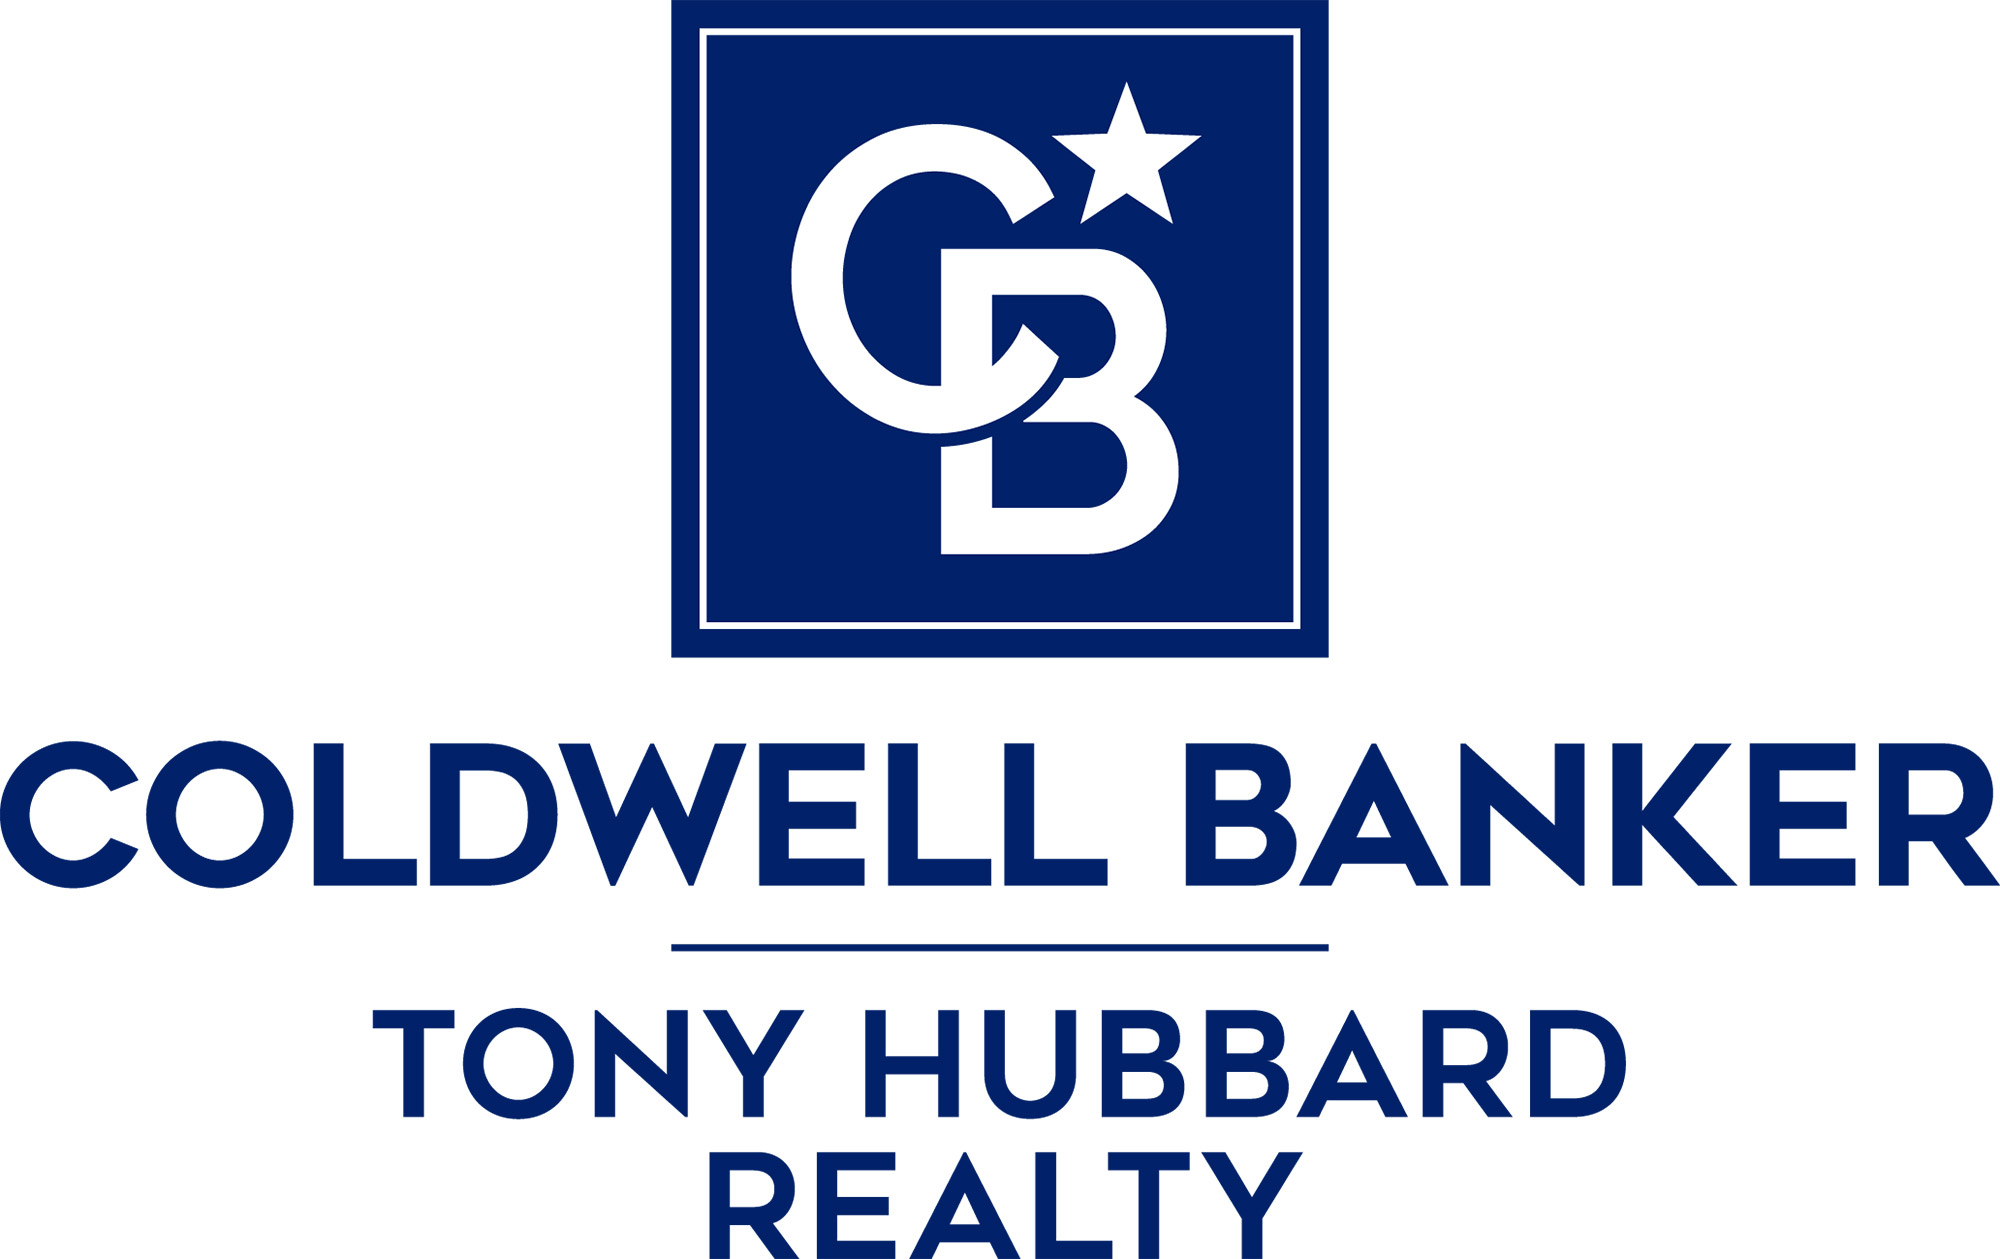 Paul Bills - Coldwell Banker Tony Hubbard Logo